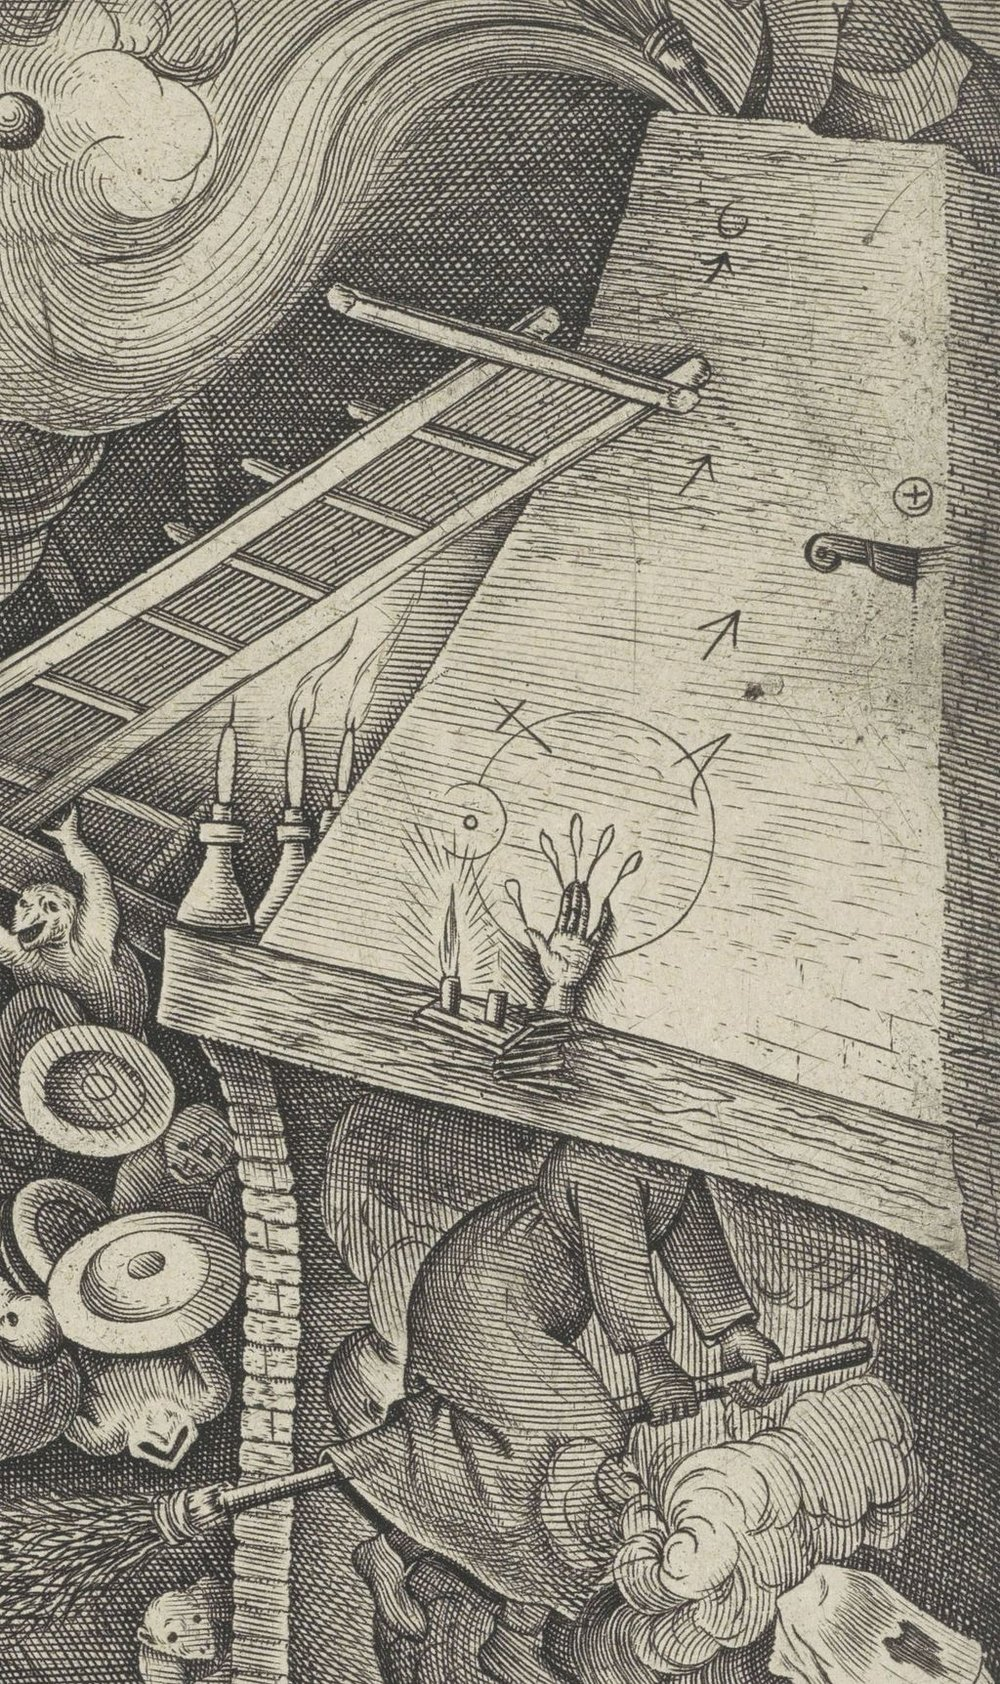 A Hand of Glory (Main de gloire) from  Jacob Meets the Magician Hermogenes  by Pieter van der Heyden (1565). Source  Rijks Museum  and Wikimedia Commons. Image out of copyright.